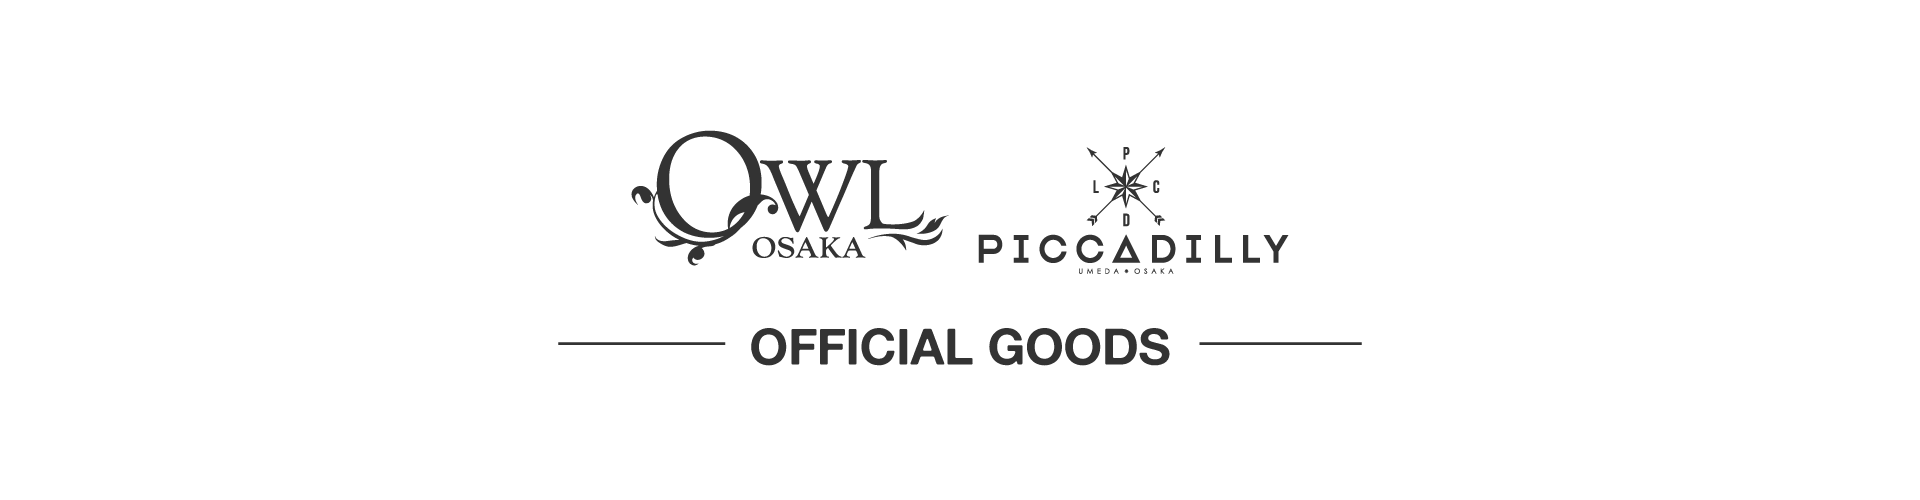 OWL OSAKA×CLUB PICCADILLY OFFICIAL GOODS